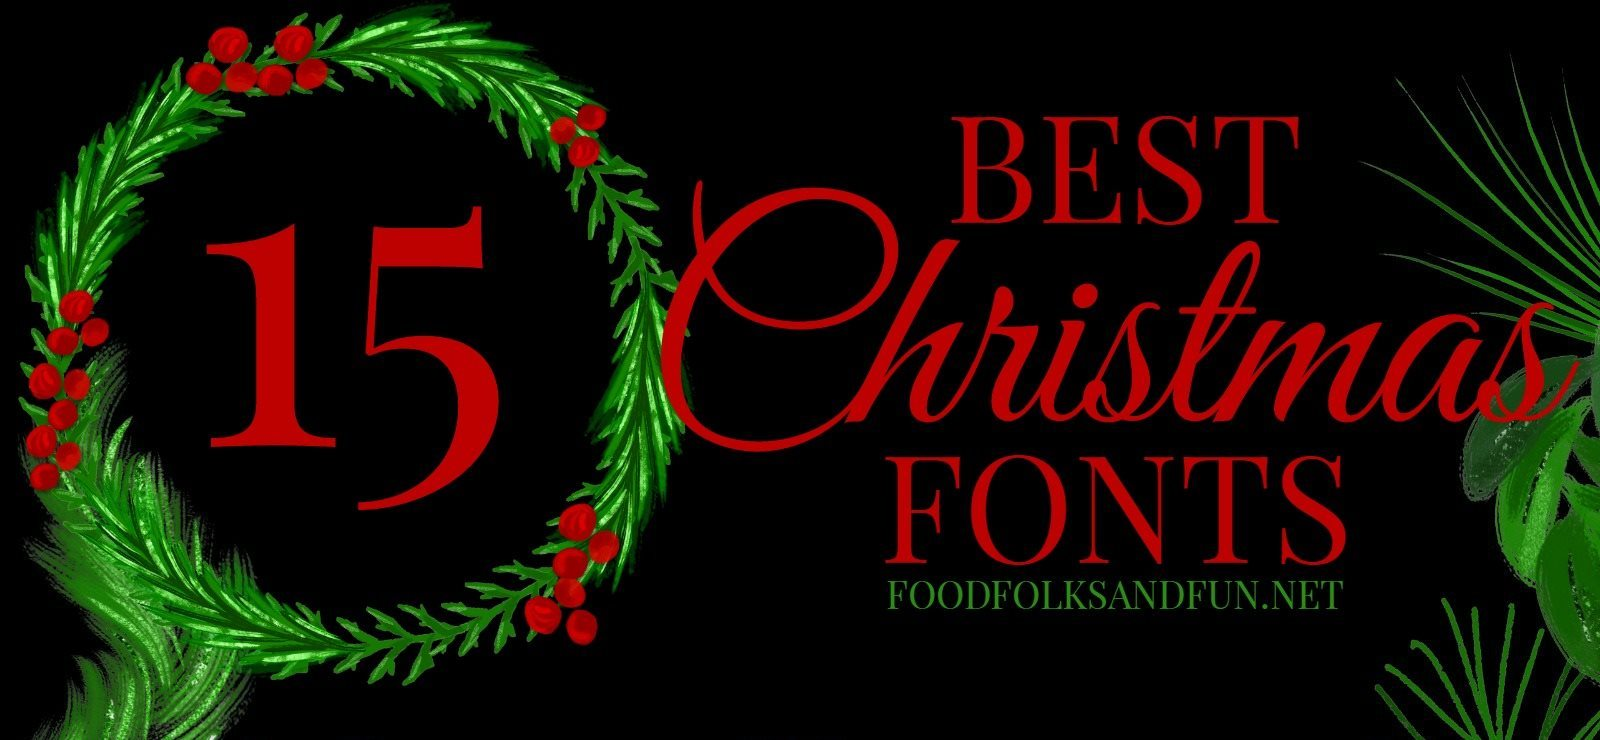 15 Best FREE Christmas Fonts • Food, Folks and Fun